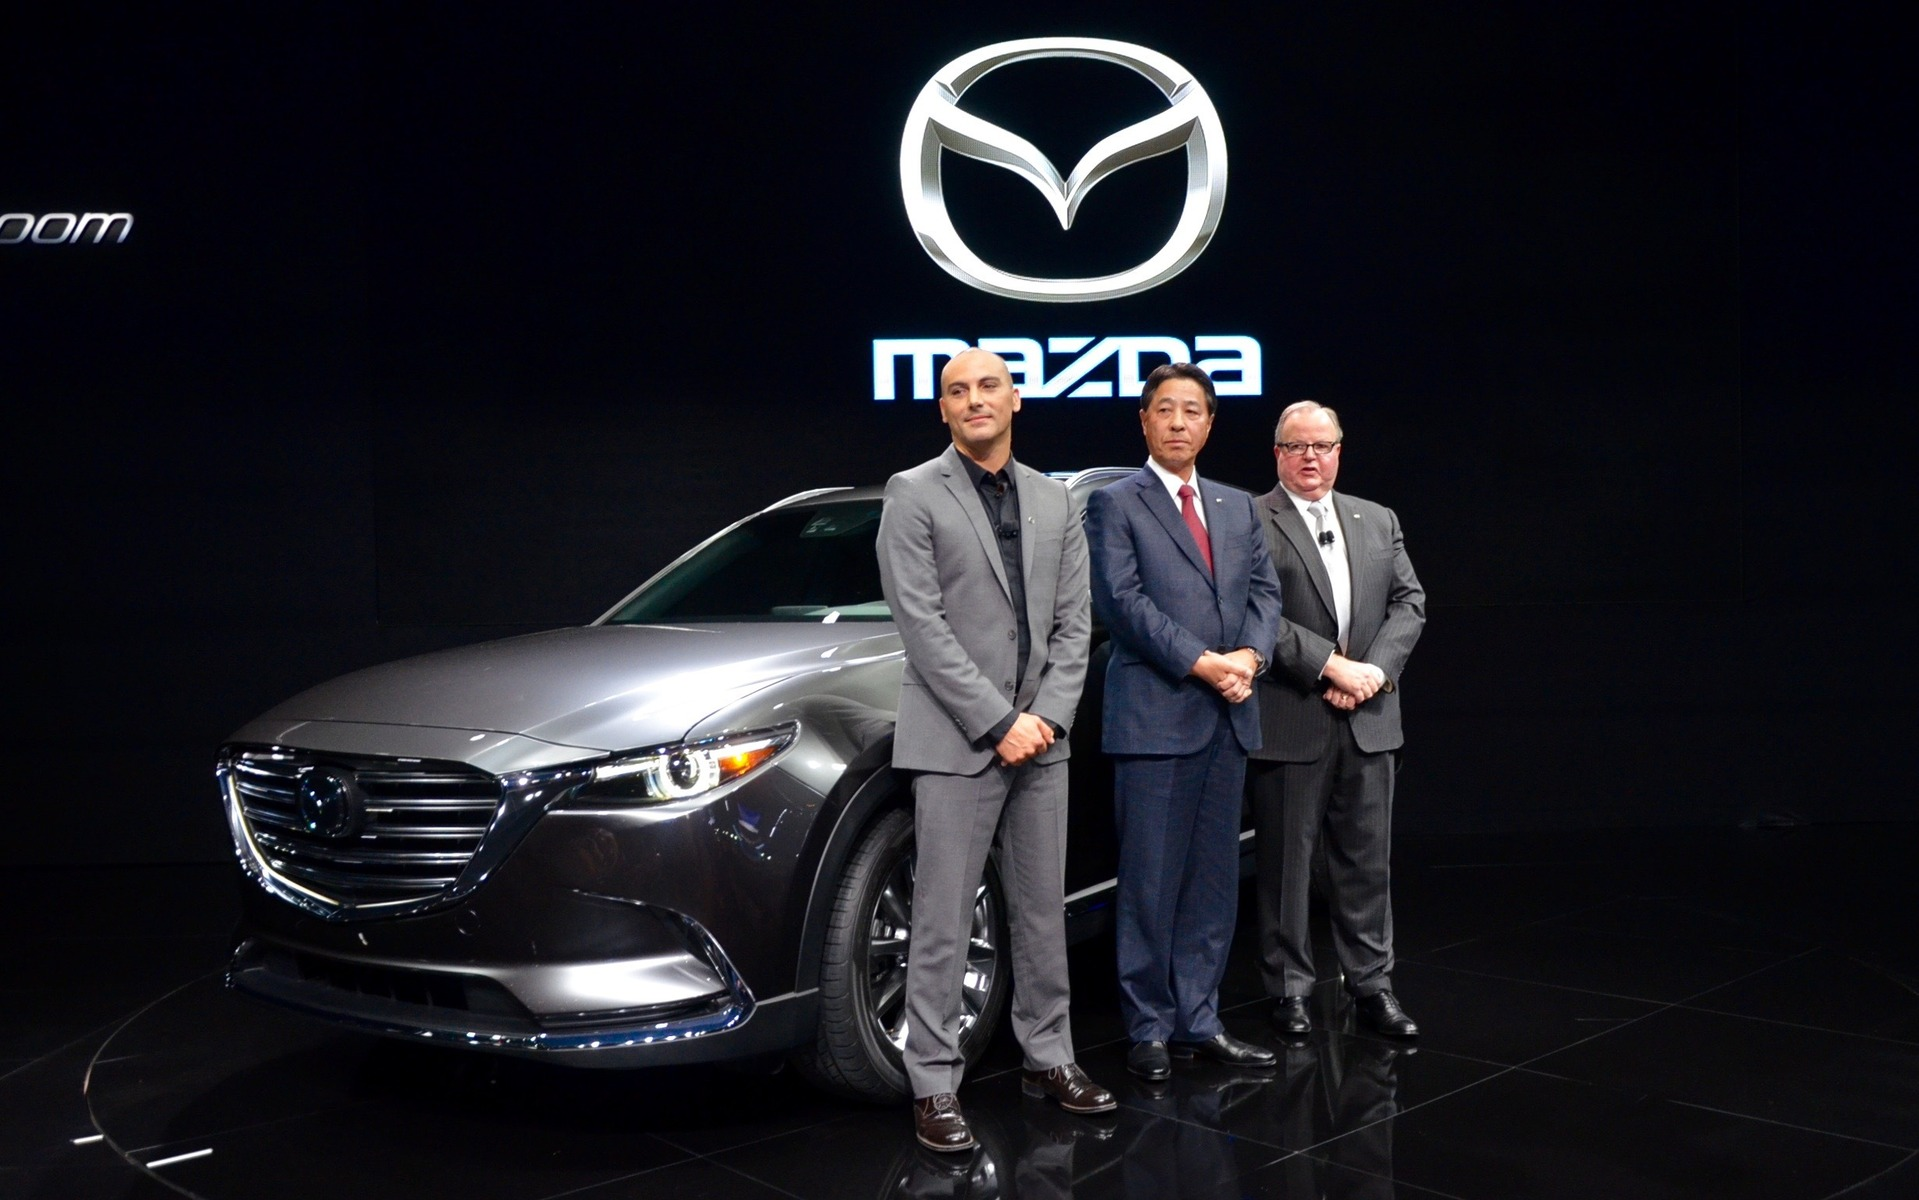 The 2016 Mazda CX-9's launch at the 2015 Los Angeles Auto Show.